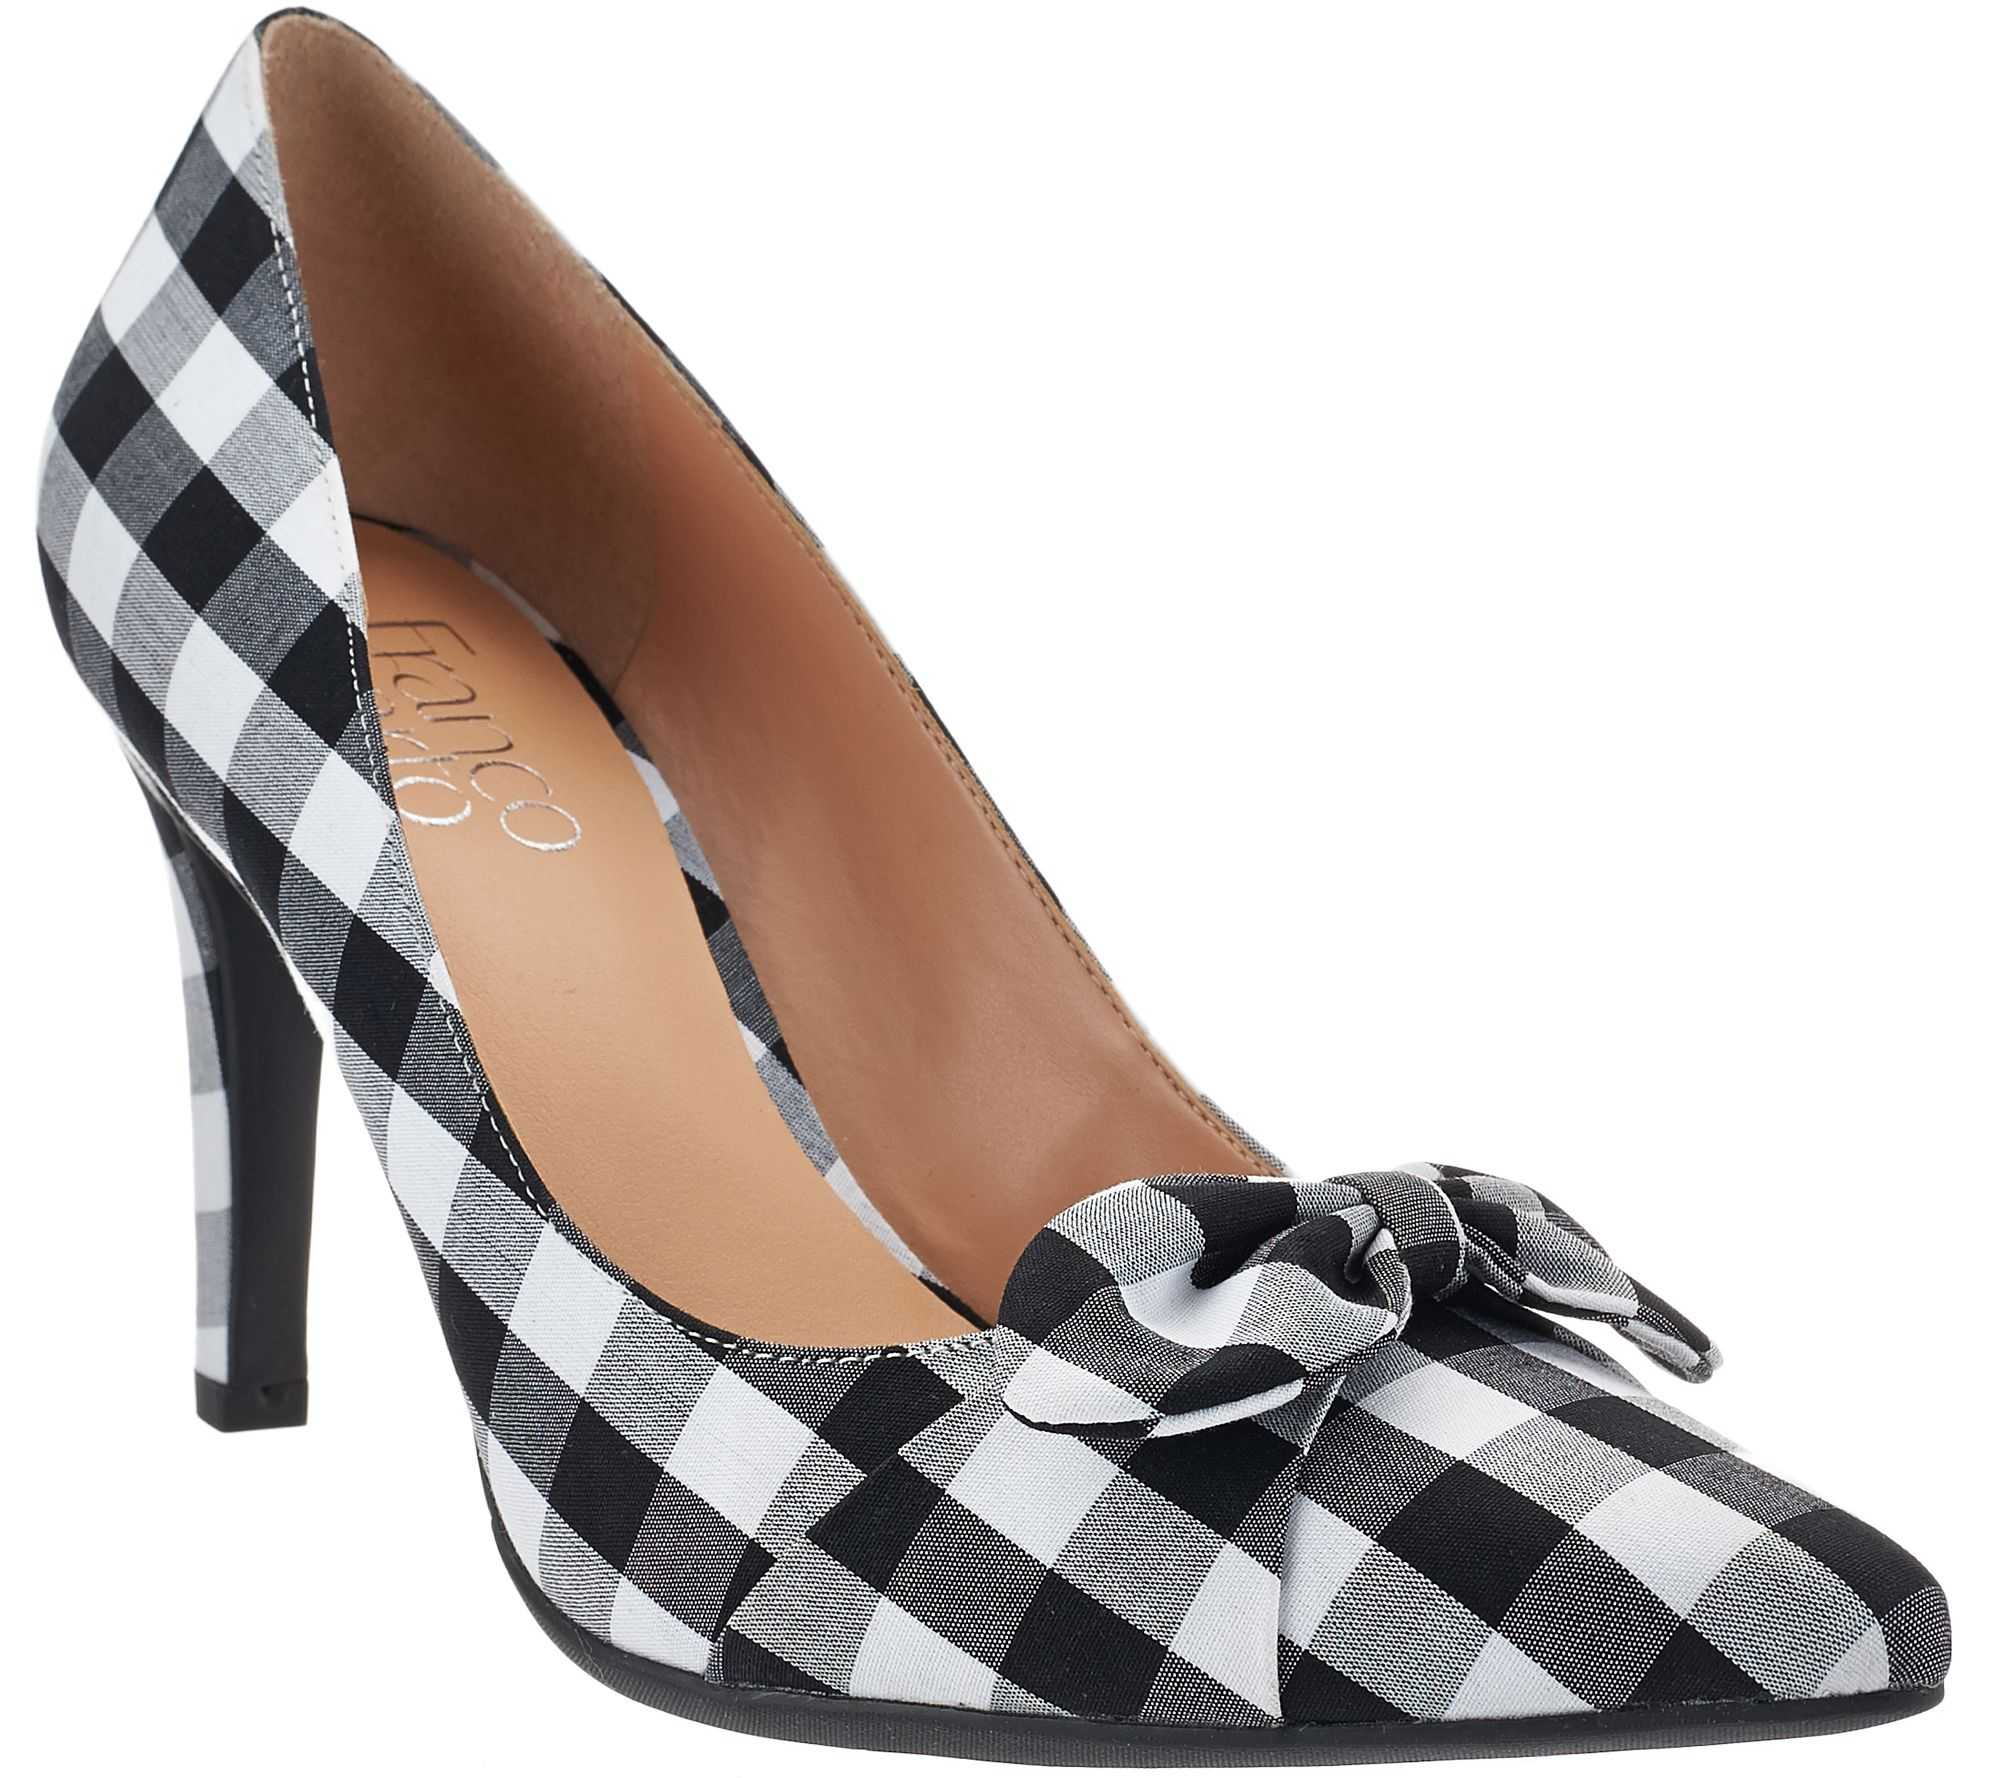 Franco Sarto Pointed Toe Pumps with Bow Detail - Arabella - A274581